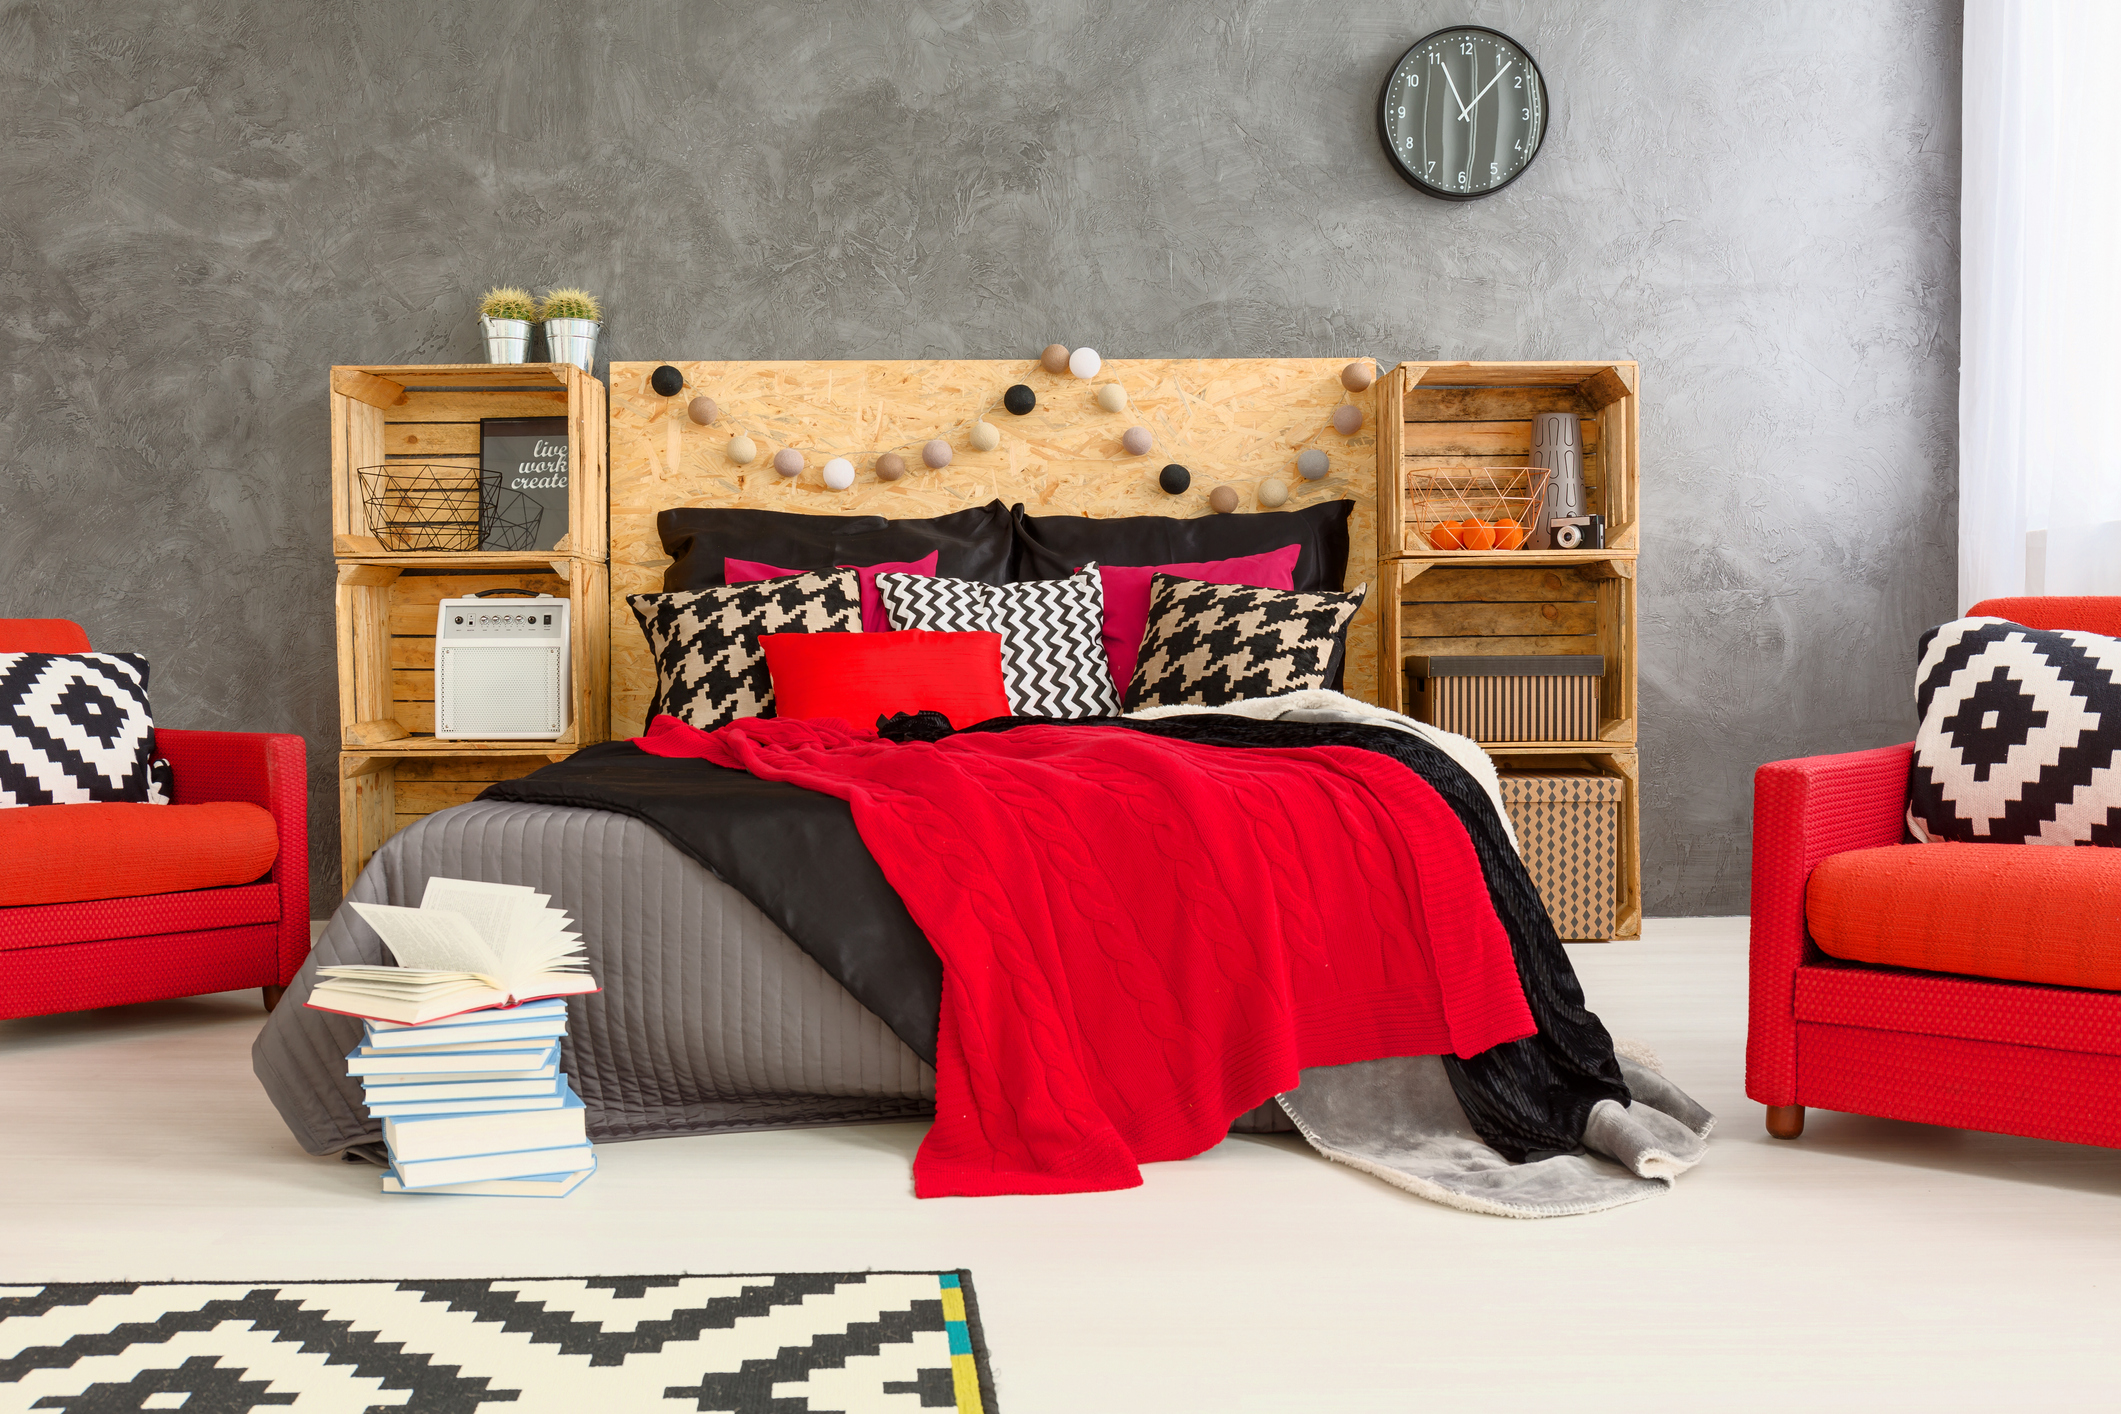 View of a Modern and Creative Bedroom